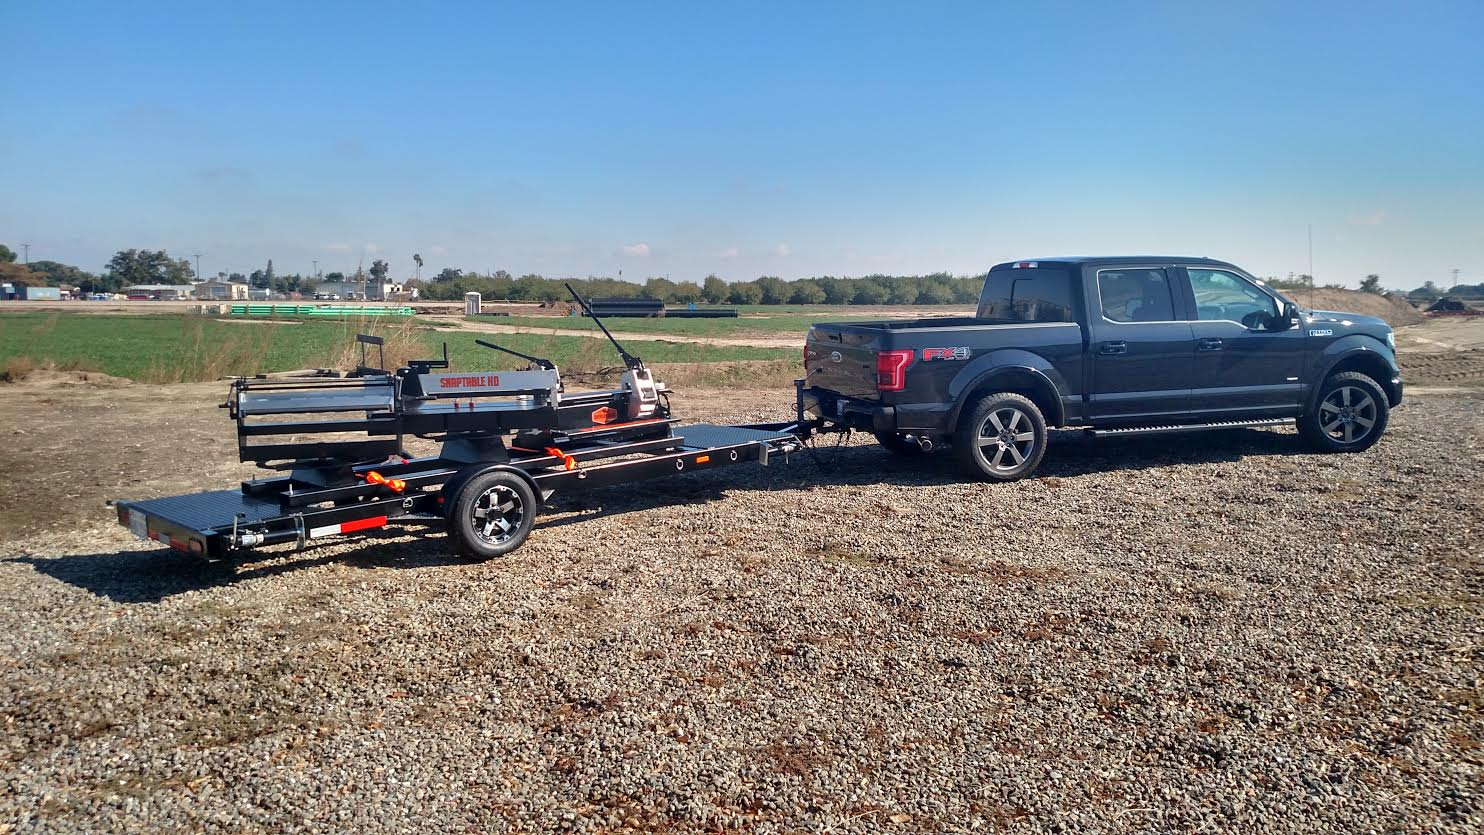 Swenson Shear releases a Trailer option for the Snap Table Collection.